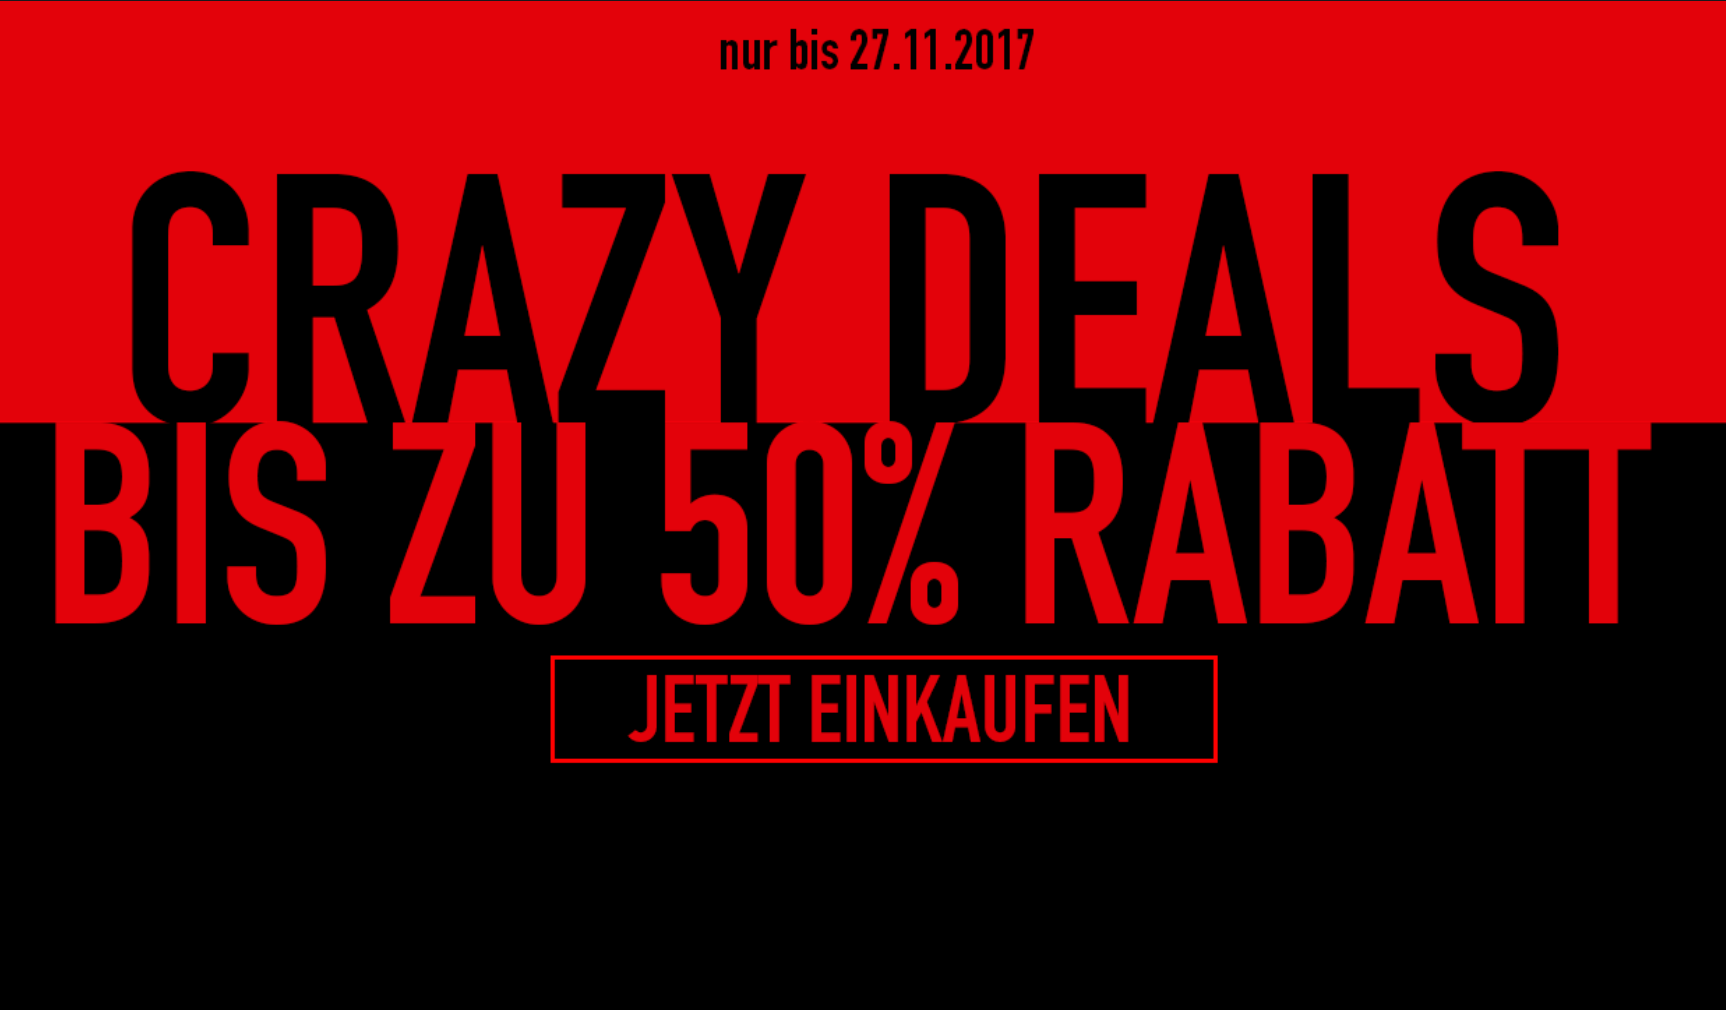 Wann Ist Black Friday Crazy Deals Bei Odlo Bis Zu 50 Rabatt Black Friday